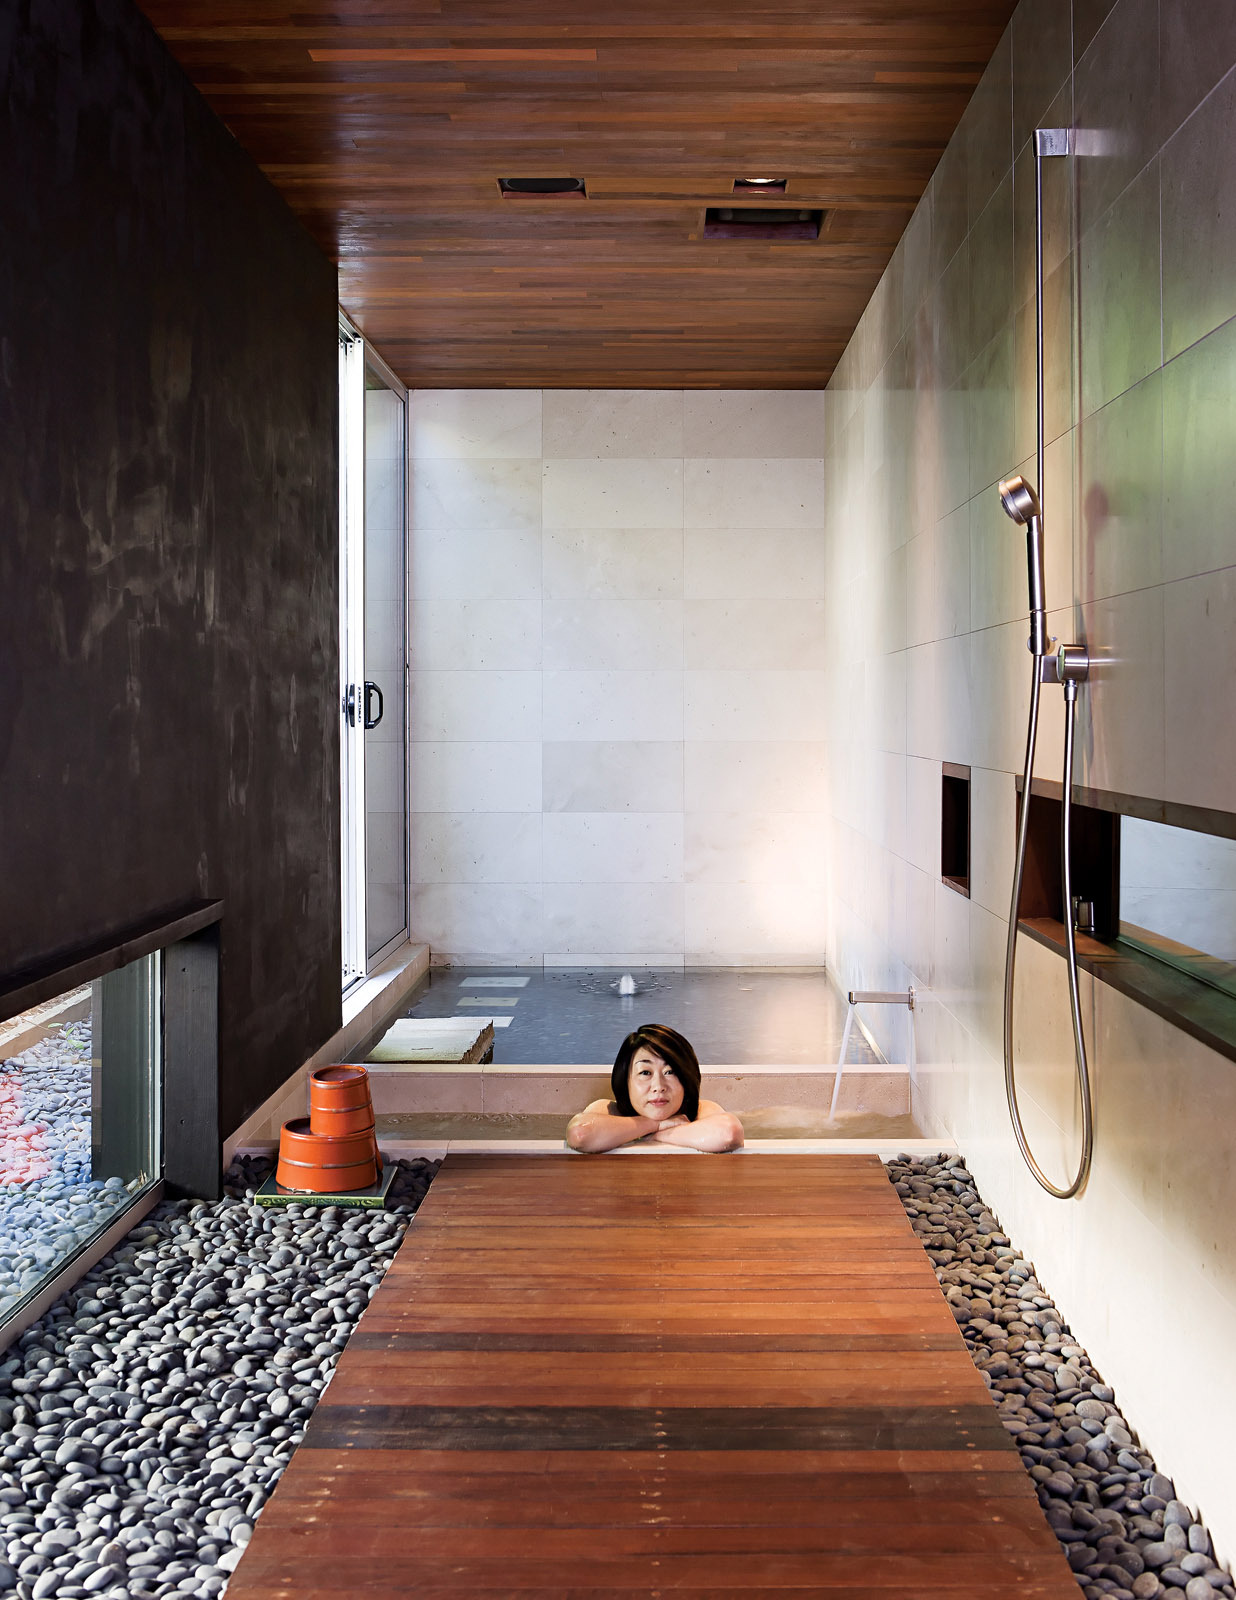 minimalist interior design ideas modern design furniture also minimalist shower in modern interior images minimalist design